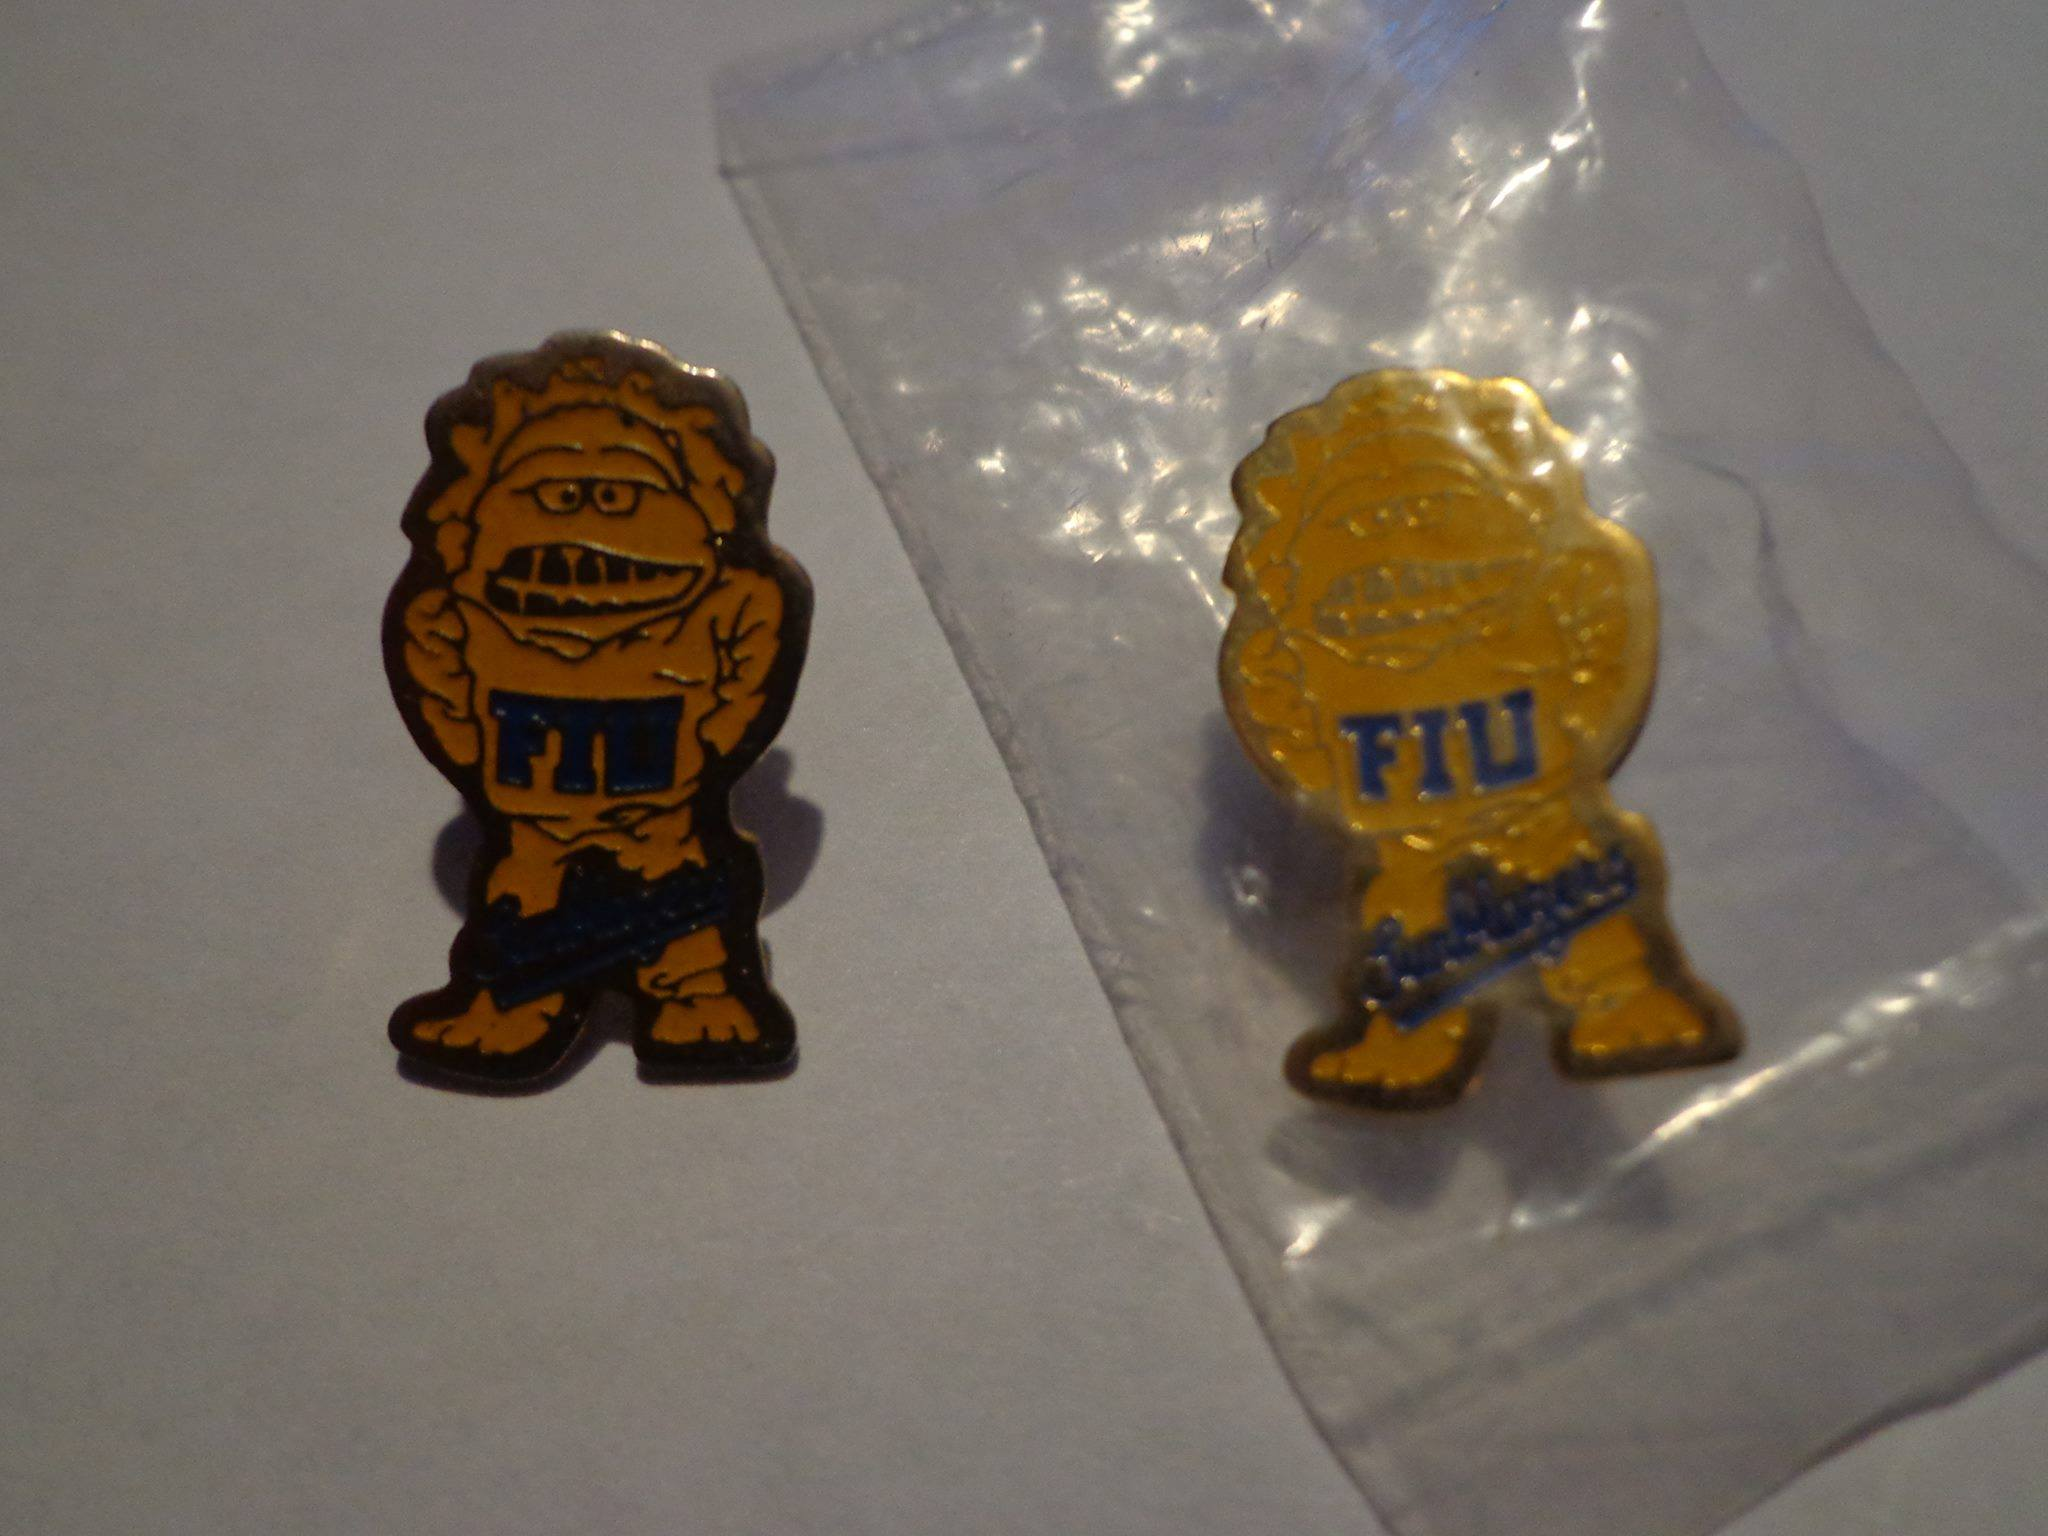 This was a message sent to us on our Facebook by an alumnus. We posted a photo of our old mascot, the Sunblazer, and he revealed to us that he had some old Sunblazer pins. He shared this photo with us.